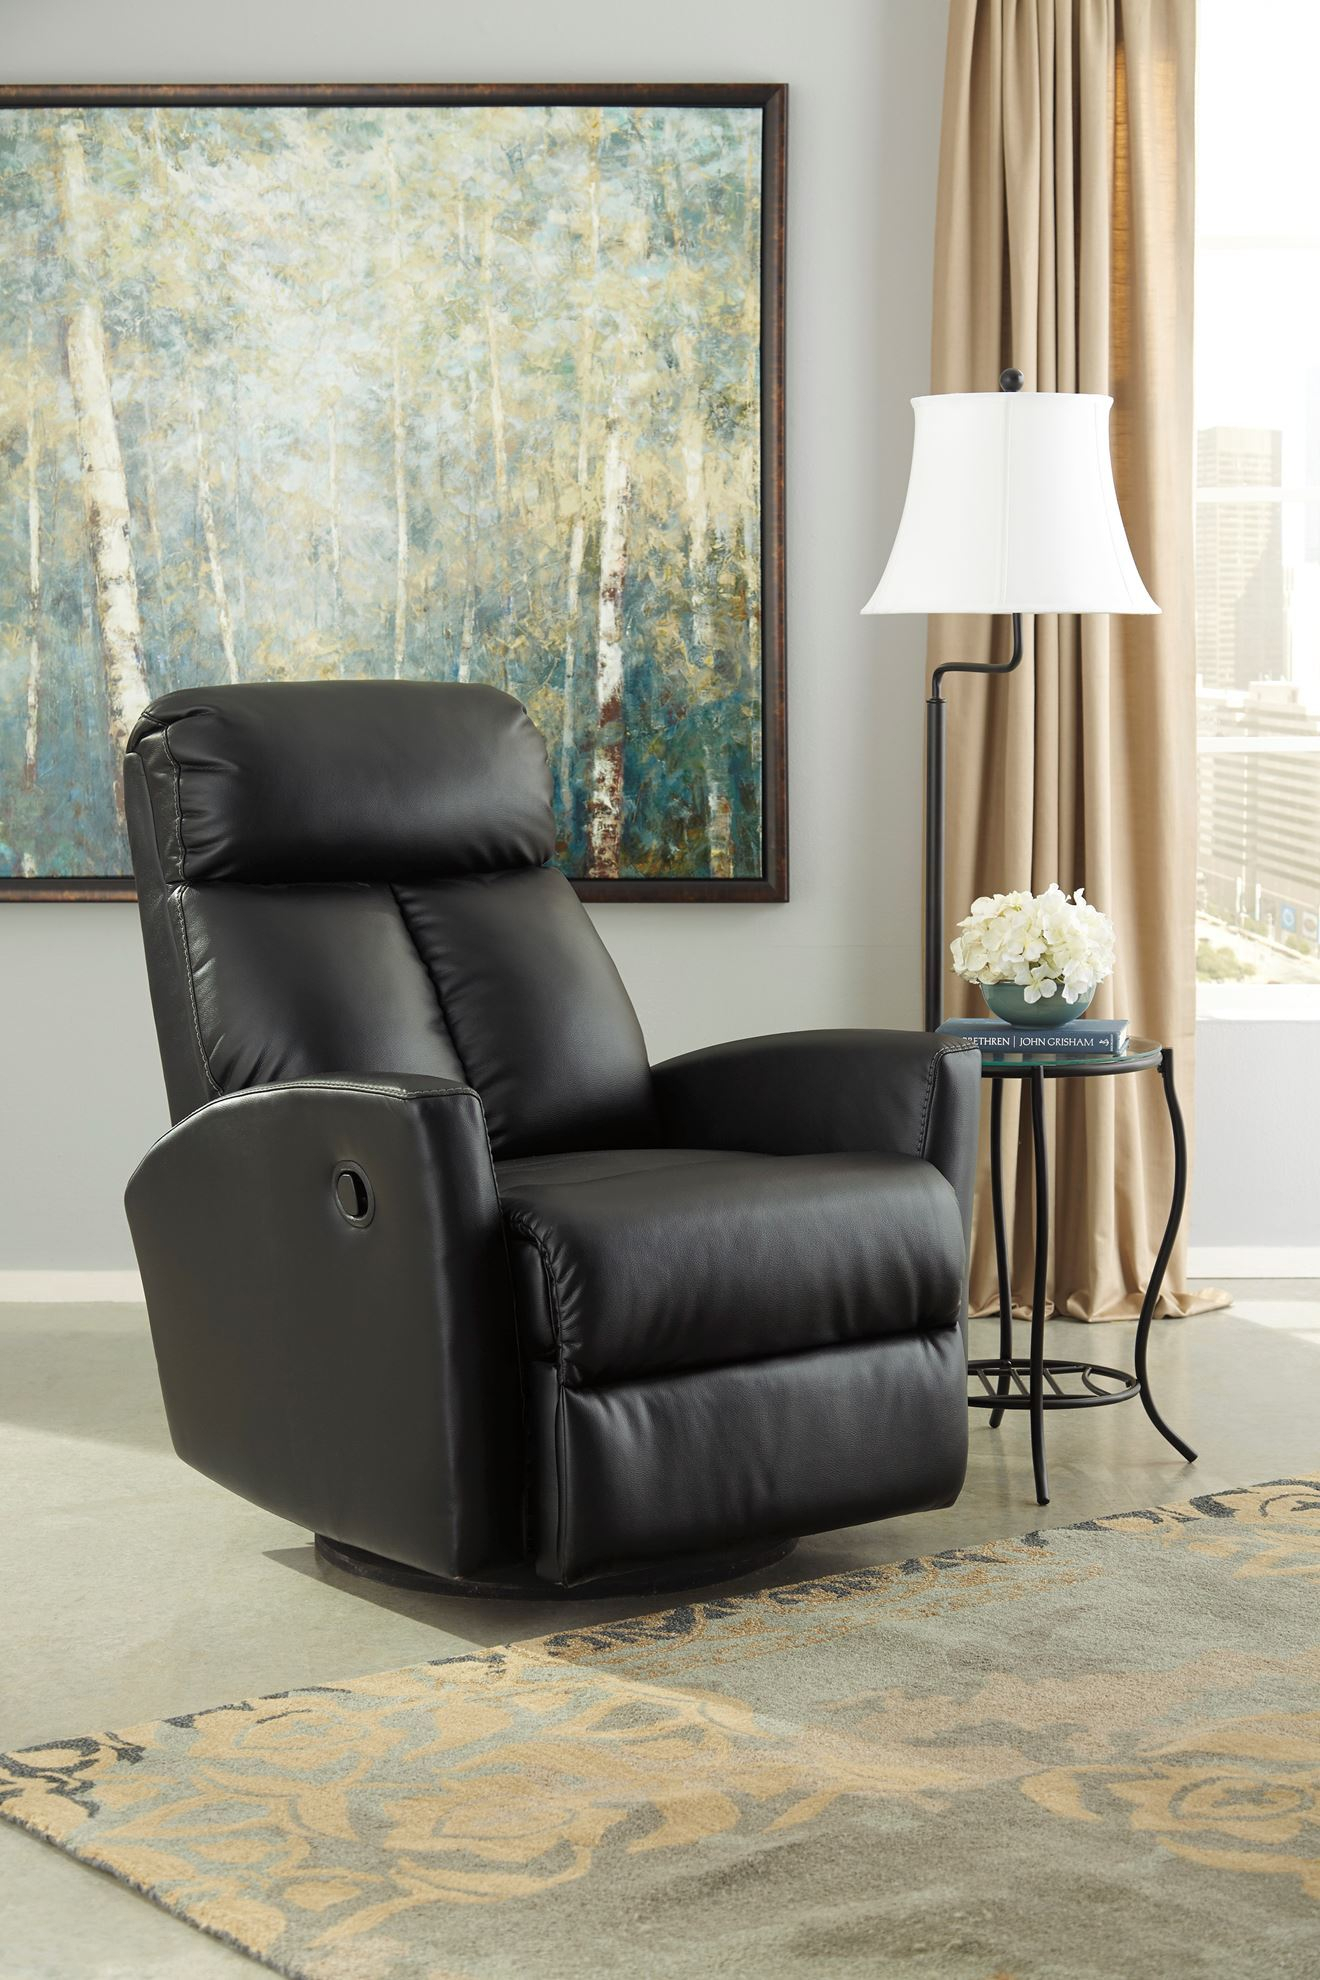 Furniture: Swivel Glider Recliner Is Perfect For Any Nursery Or Intended For Dale Iii Polyurethane Swivel Glider Recliners (View 16 of 25)